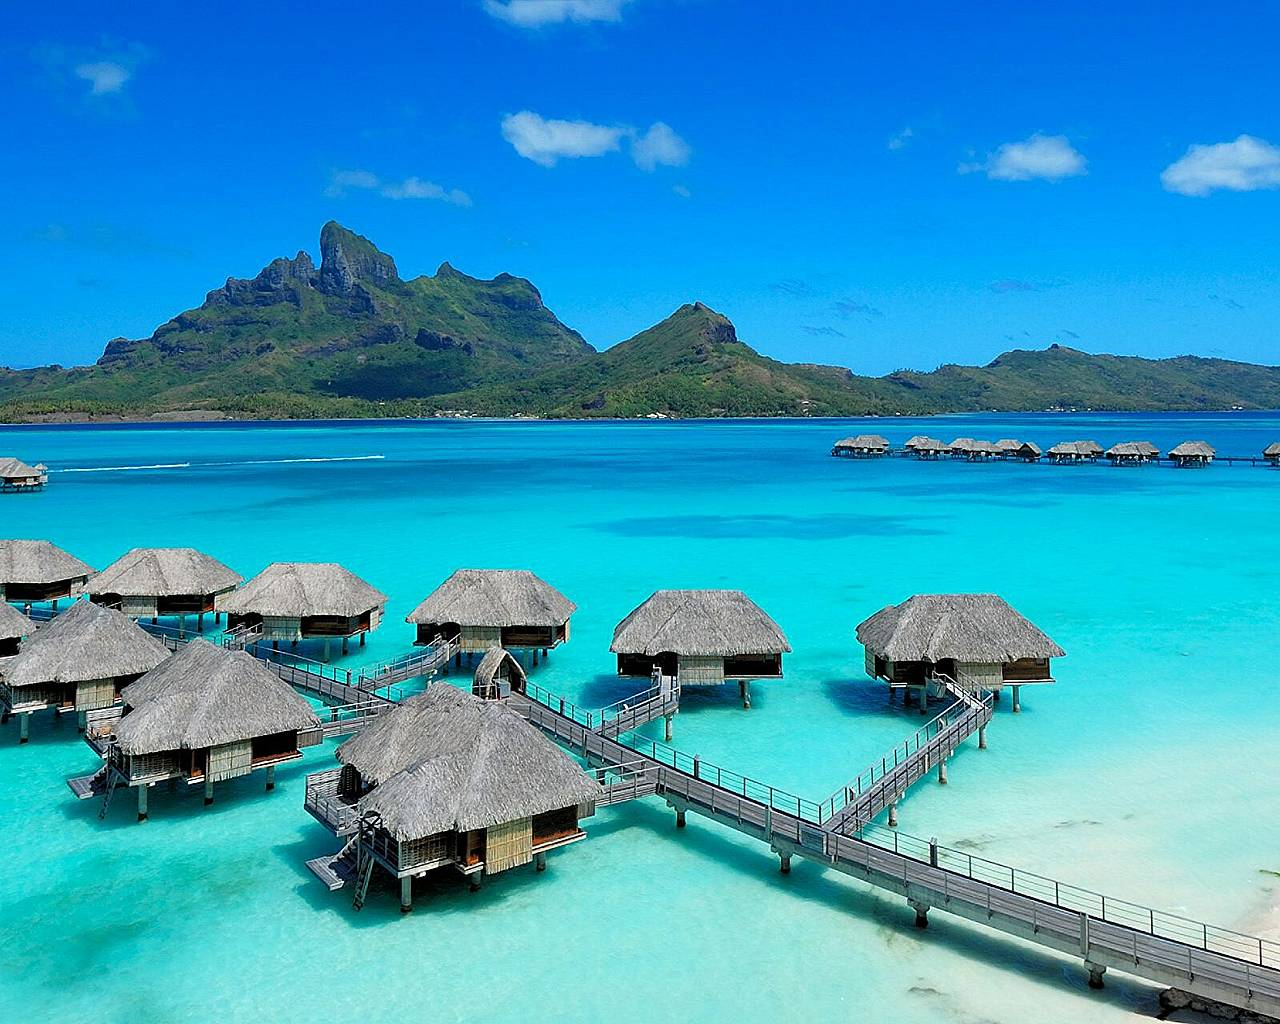 Tahiti Bora Bora Paradise Luxury Accomodation Best Hotels Beach Huts Water Bungalow Holiday Resort Four